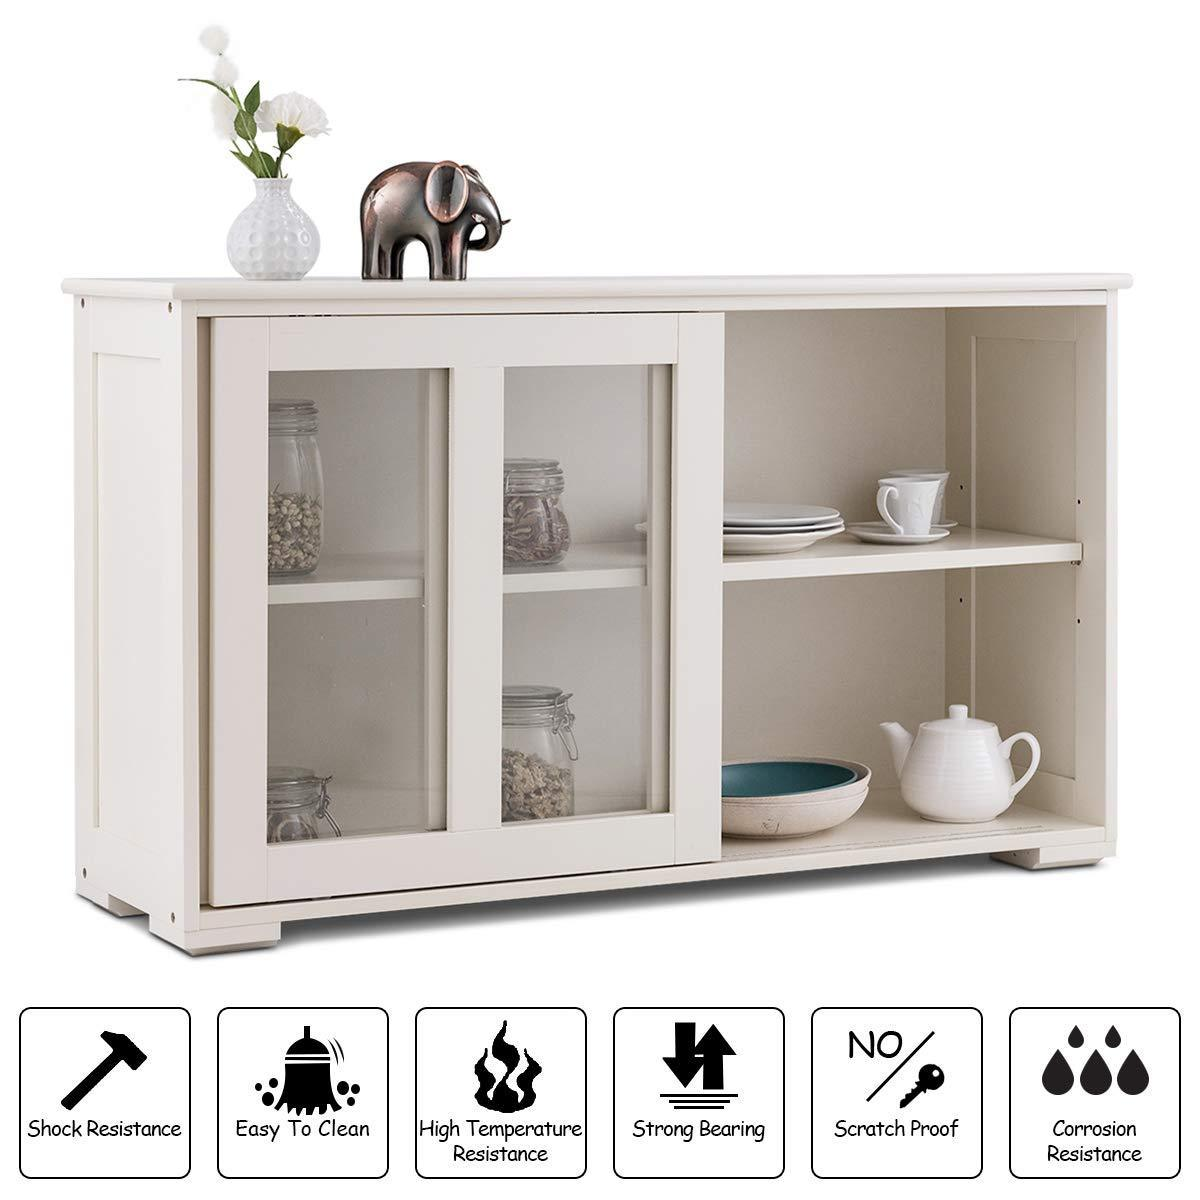 Save costzon kitchen storage sideboard antique stackable cabinet for home cupboard buffet dining room cream white with sliding door window